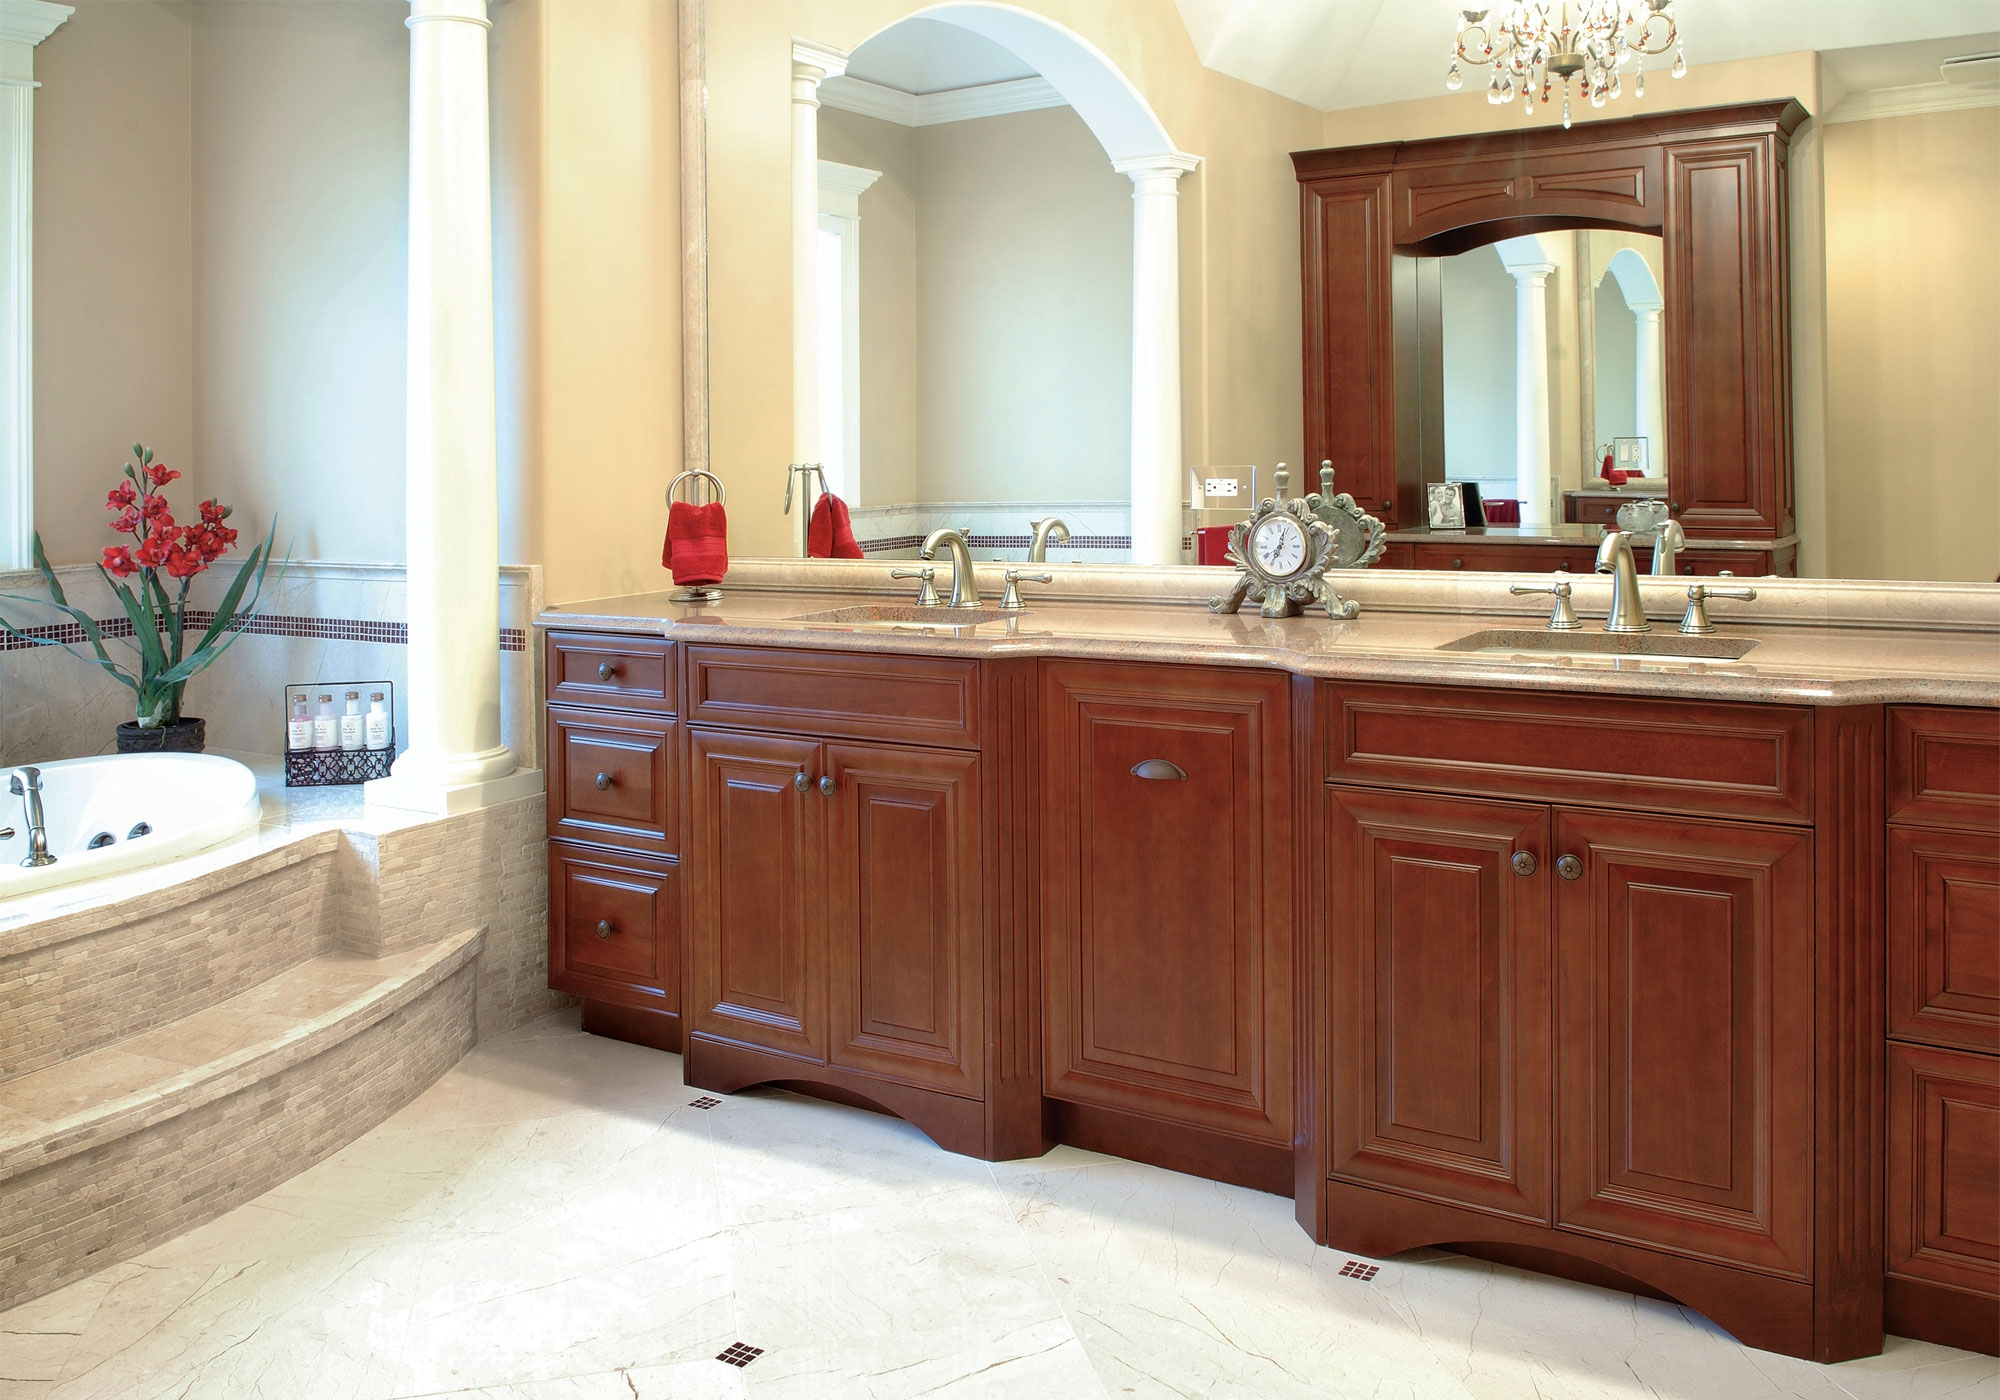 Kitchen Cabinets In Bathroomkitchen cabinets bathroom vanity cabinets advanced cabinets